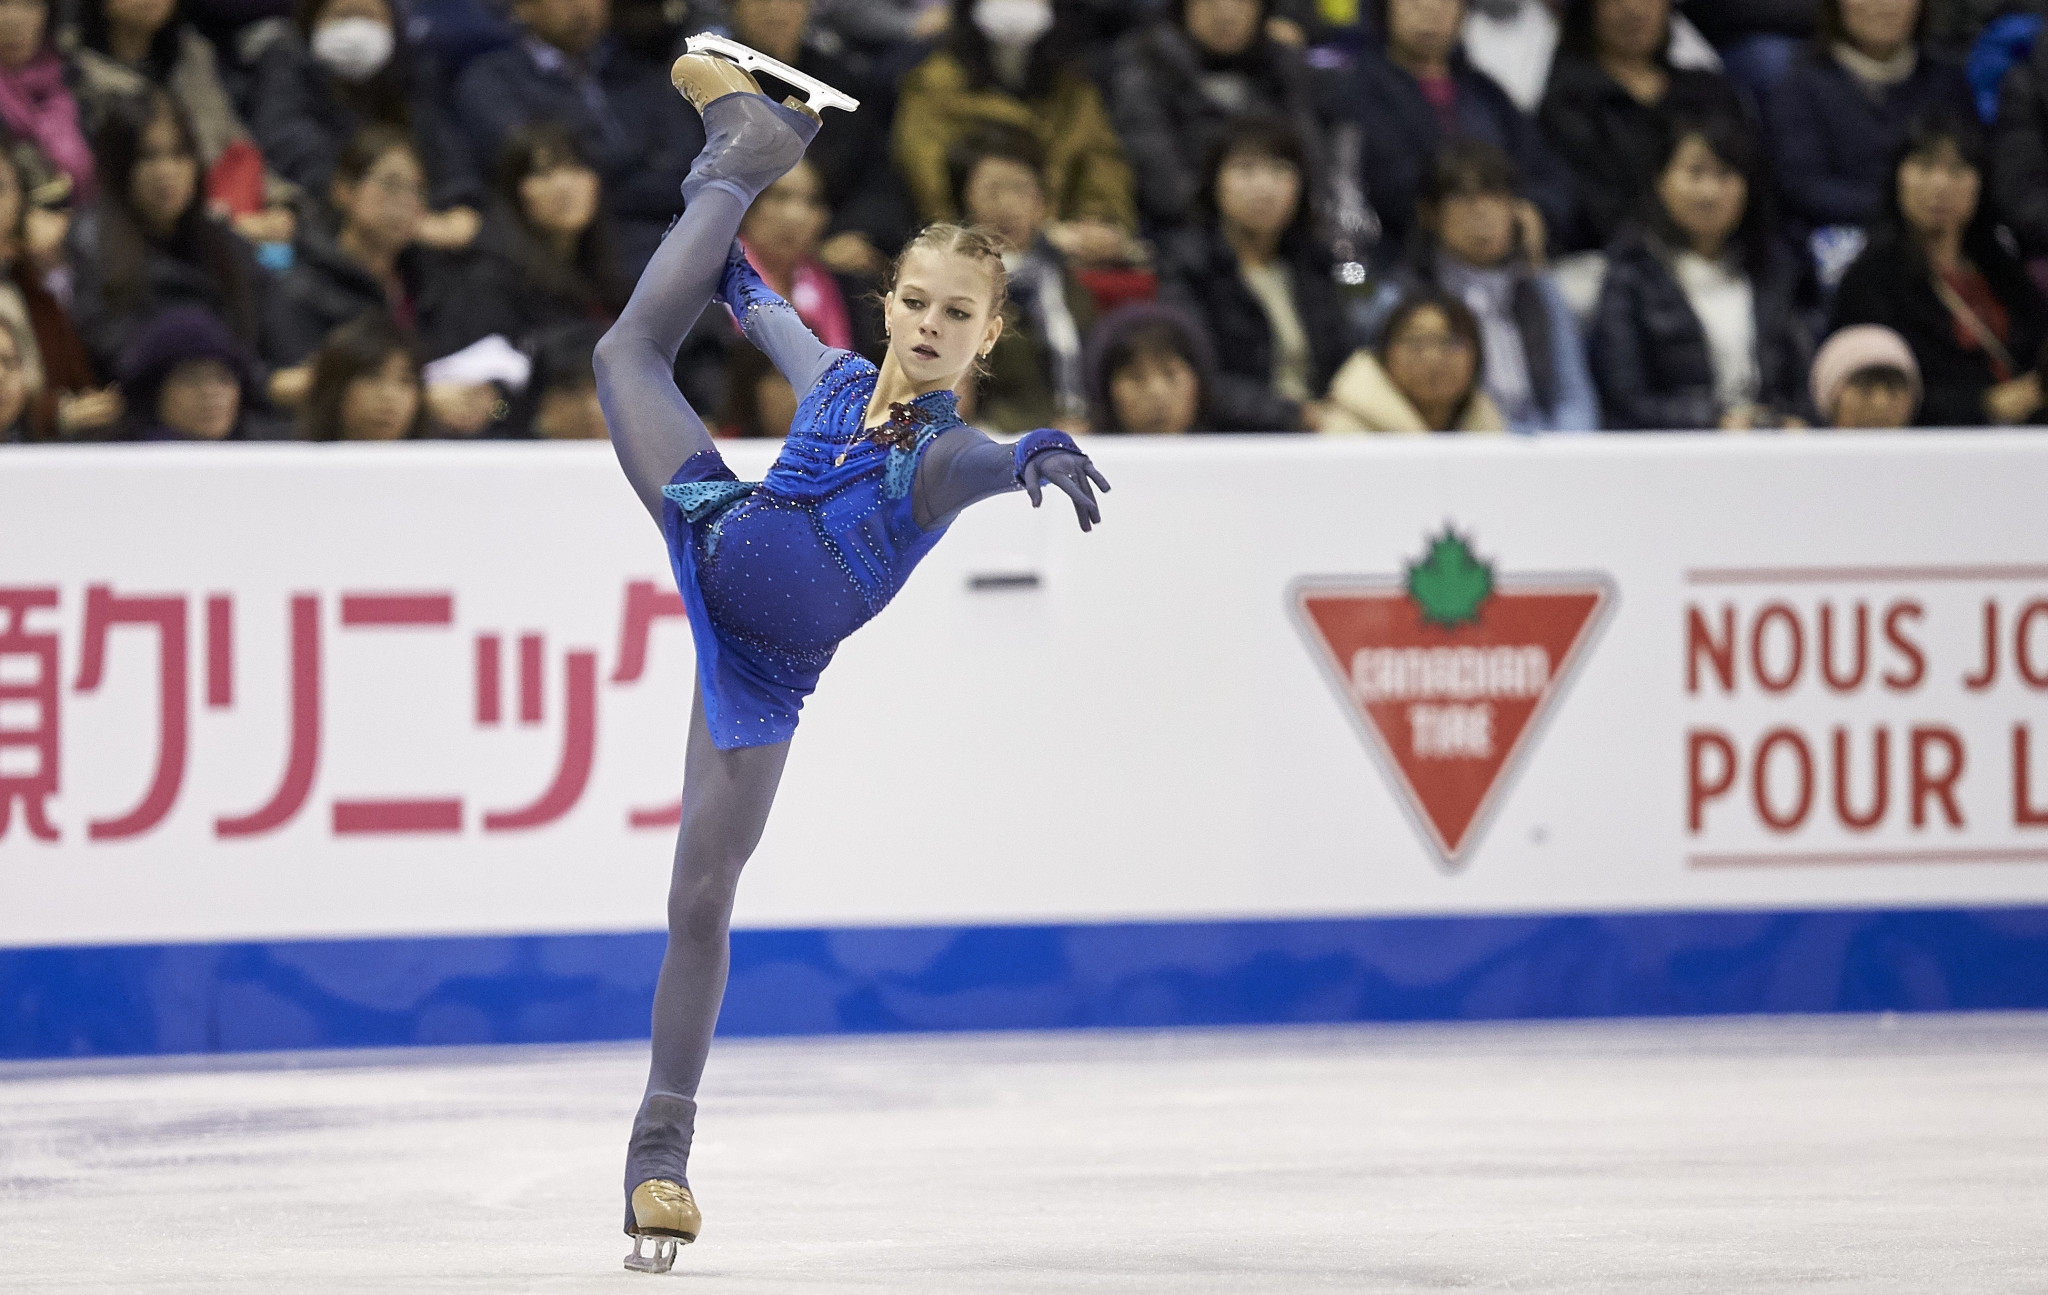 Alexandra Trusova is a main hope for Russia in the women's event ©Getty Images